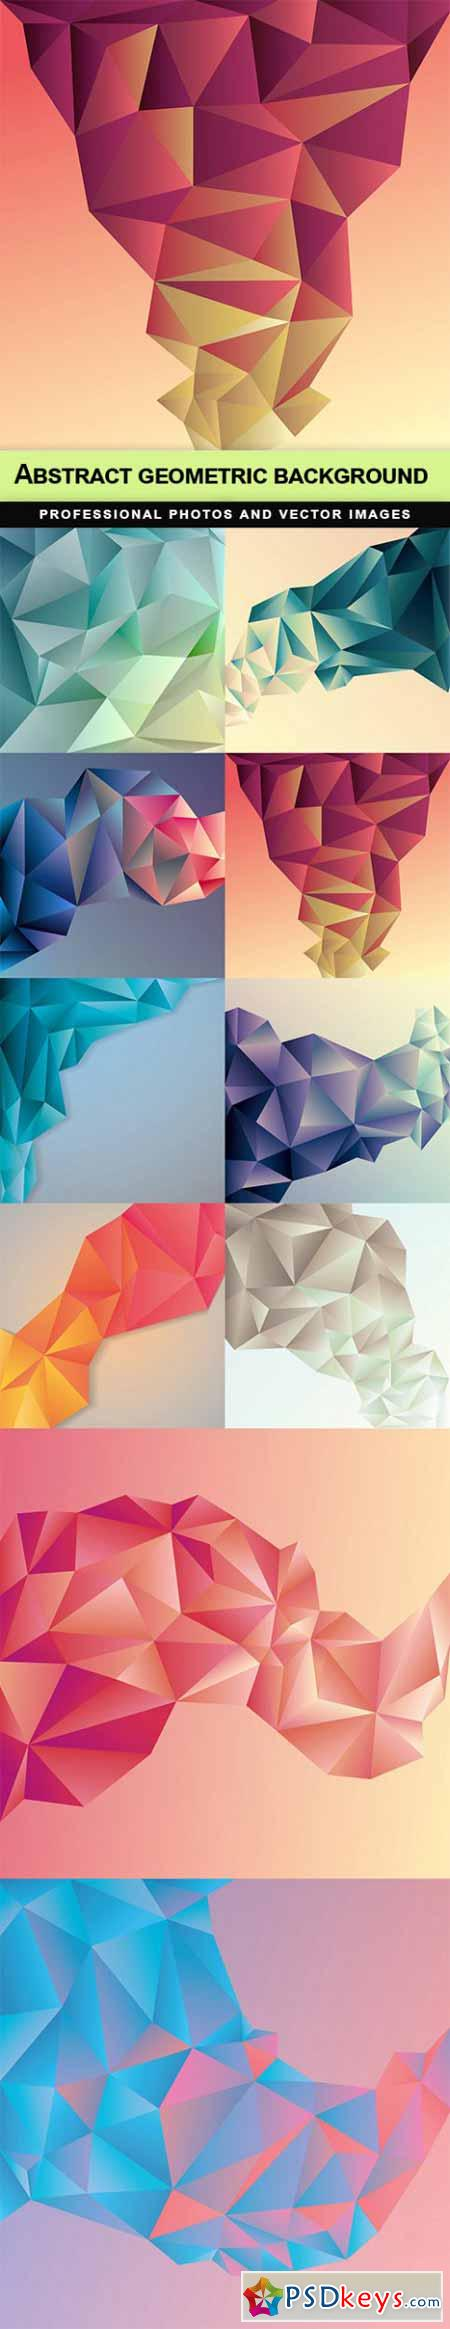 Abstract geometric background - 10 EPS